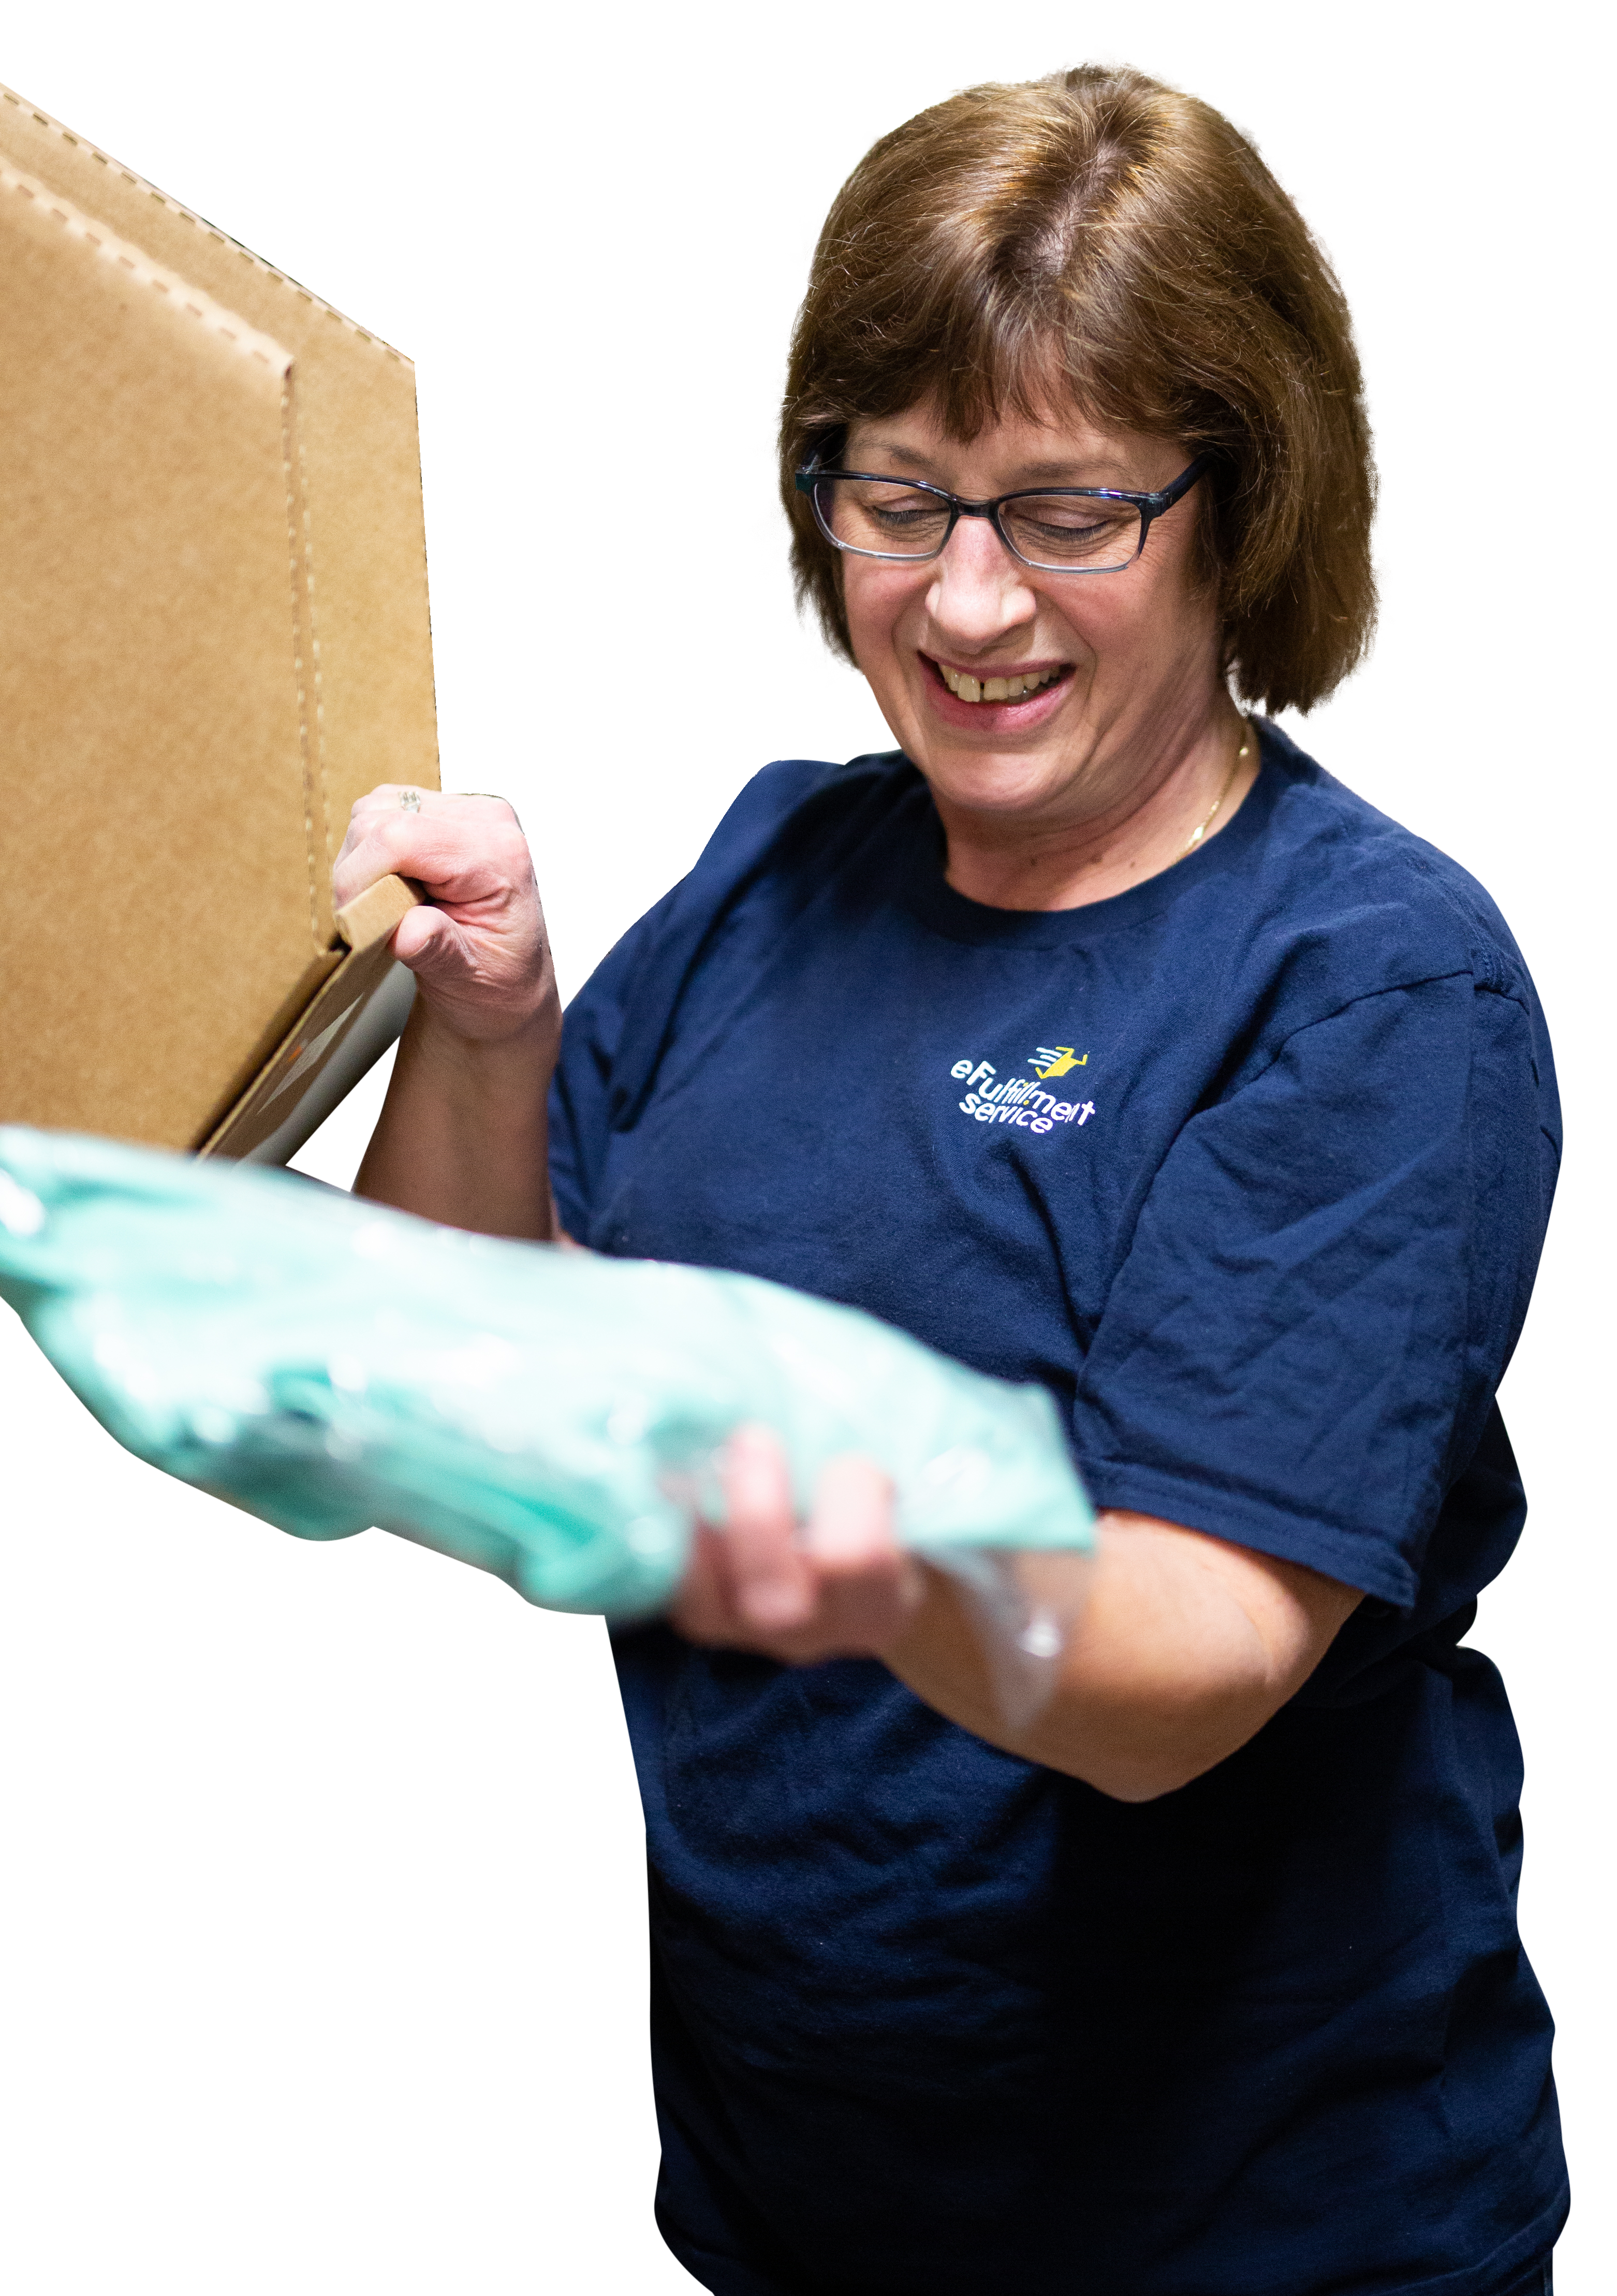 Efulfillment Service Employee Pick and Pack